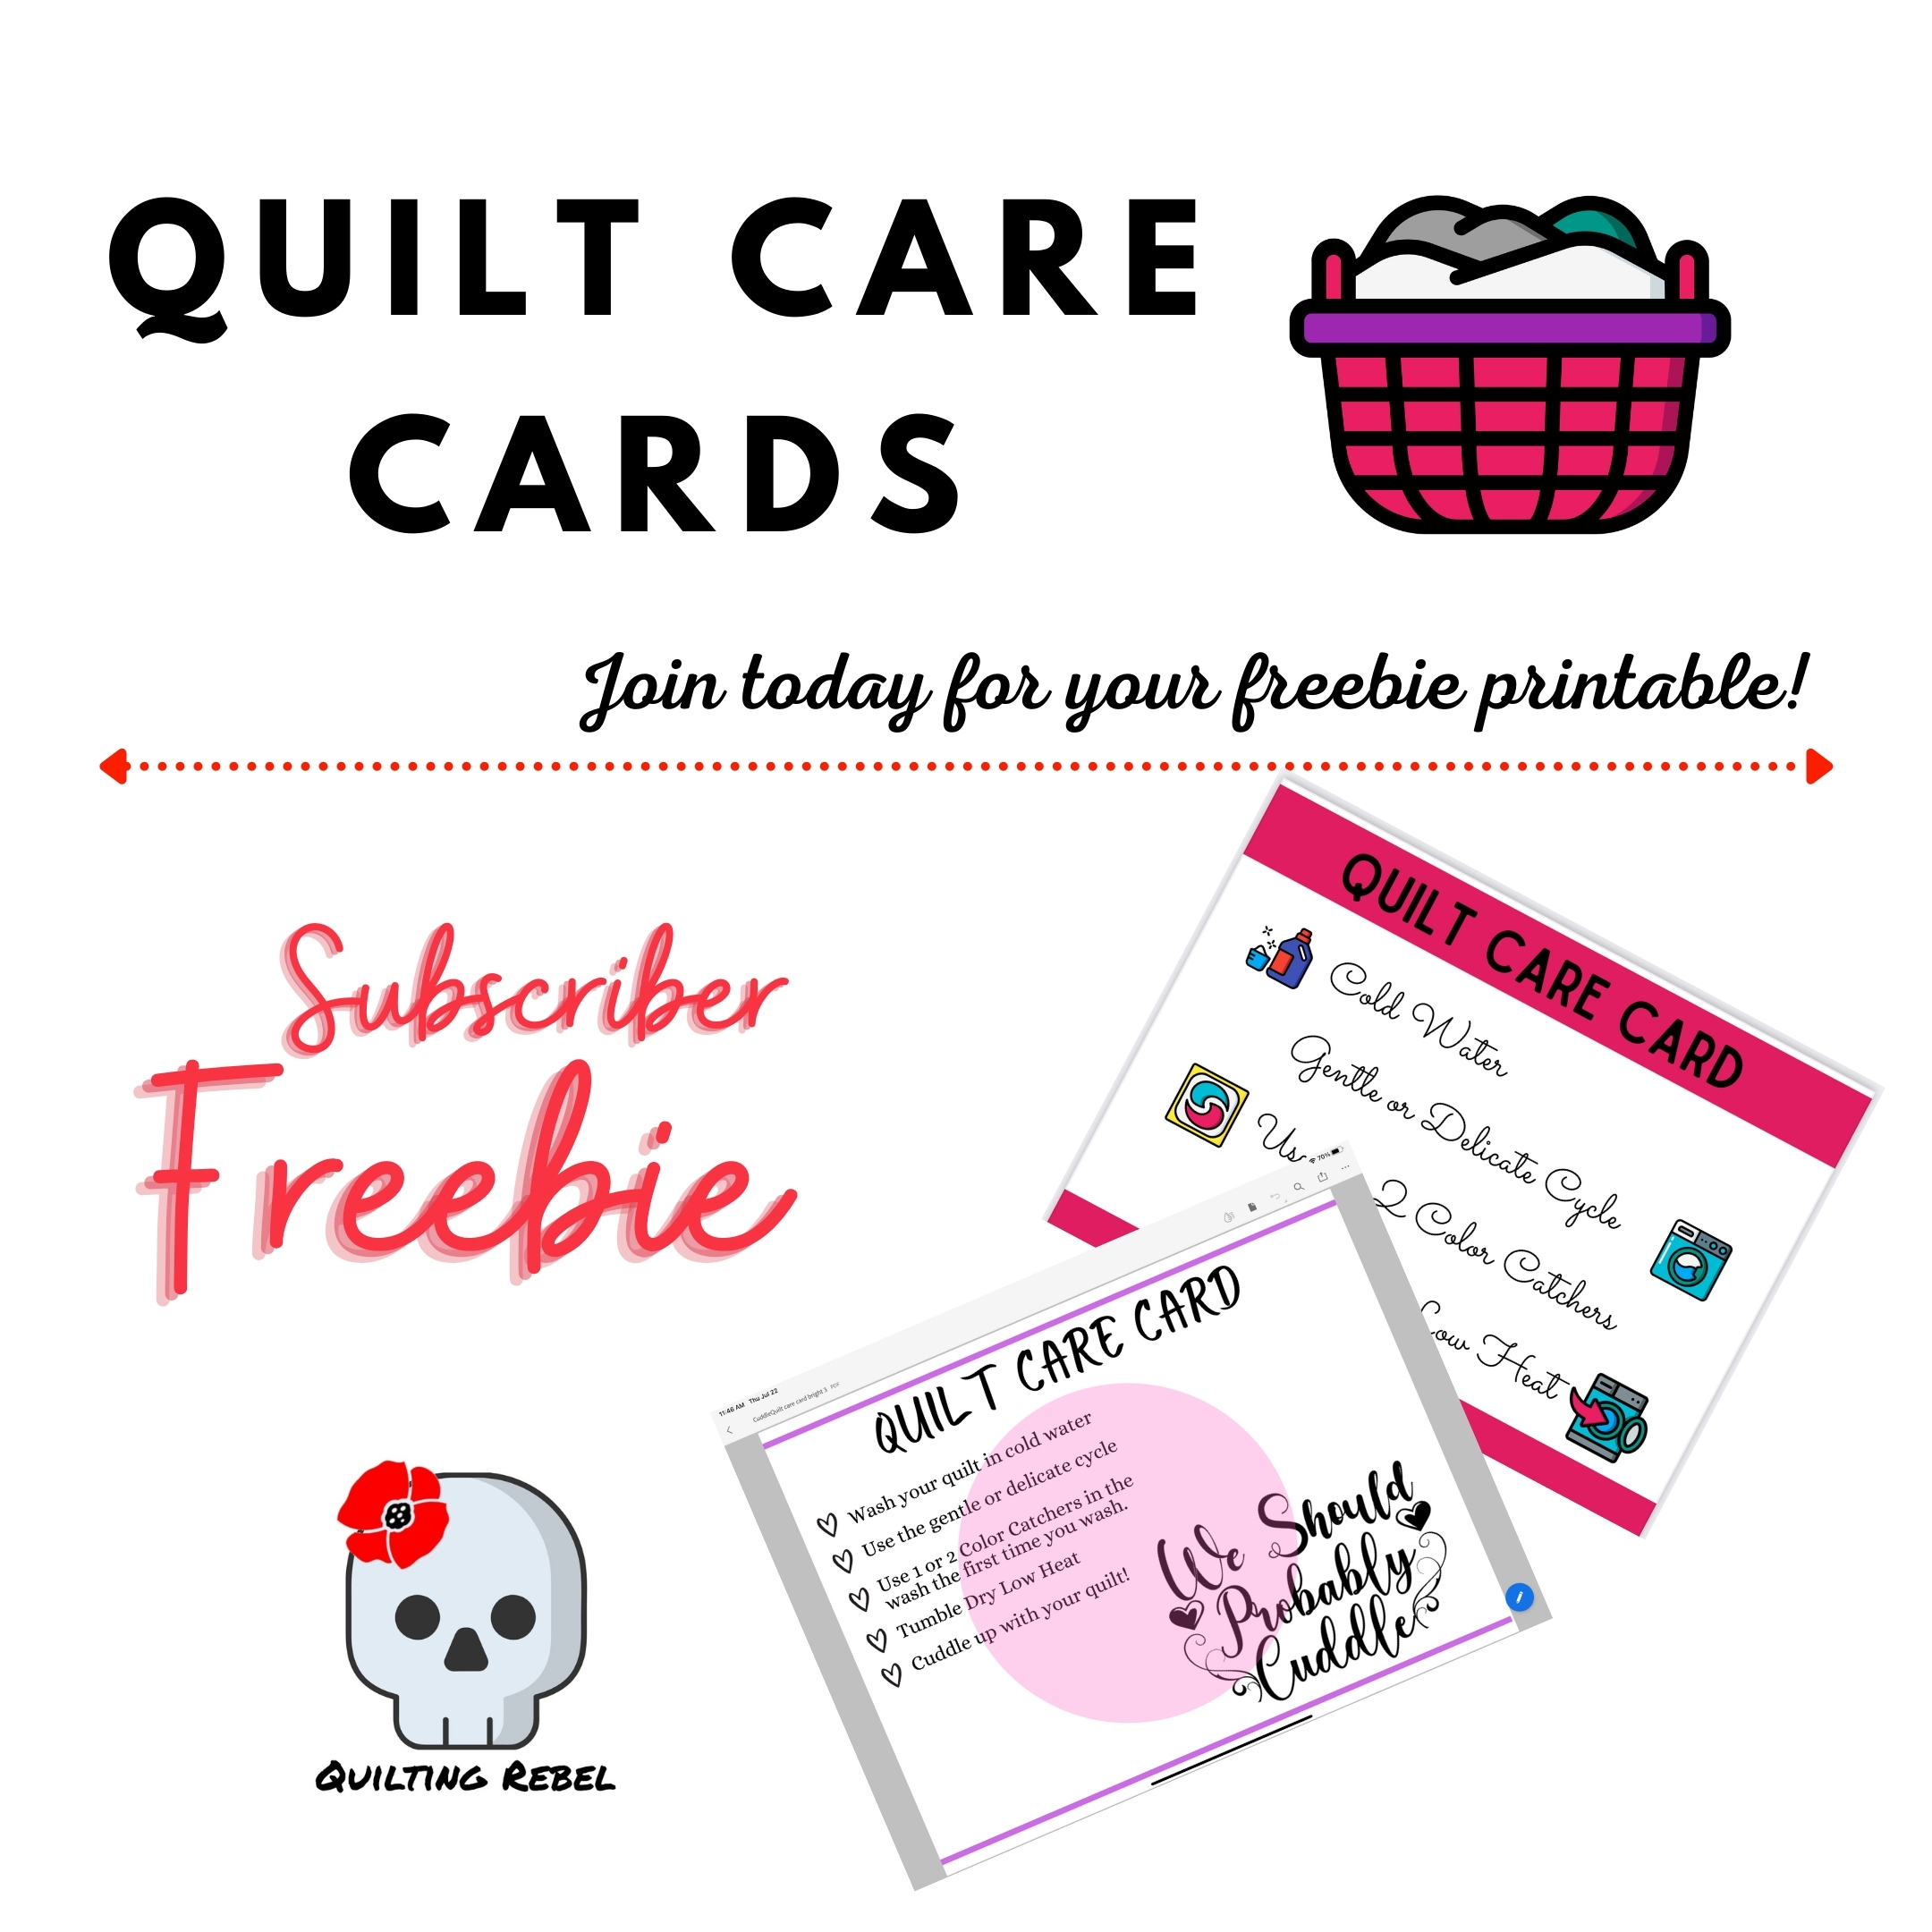 Quilt care cards